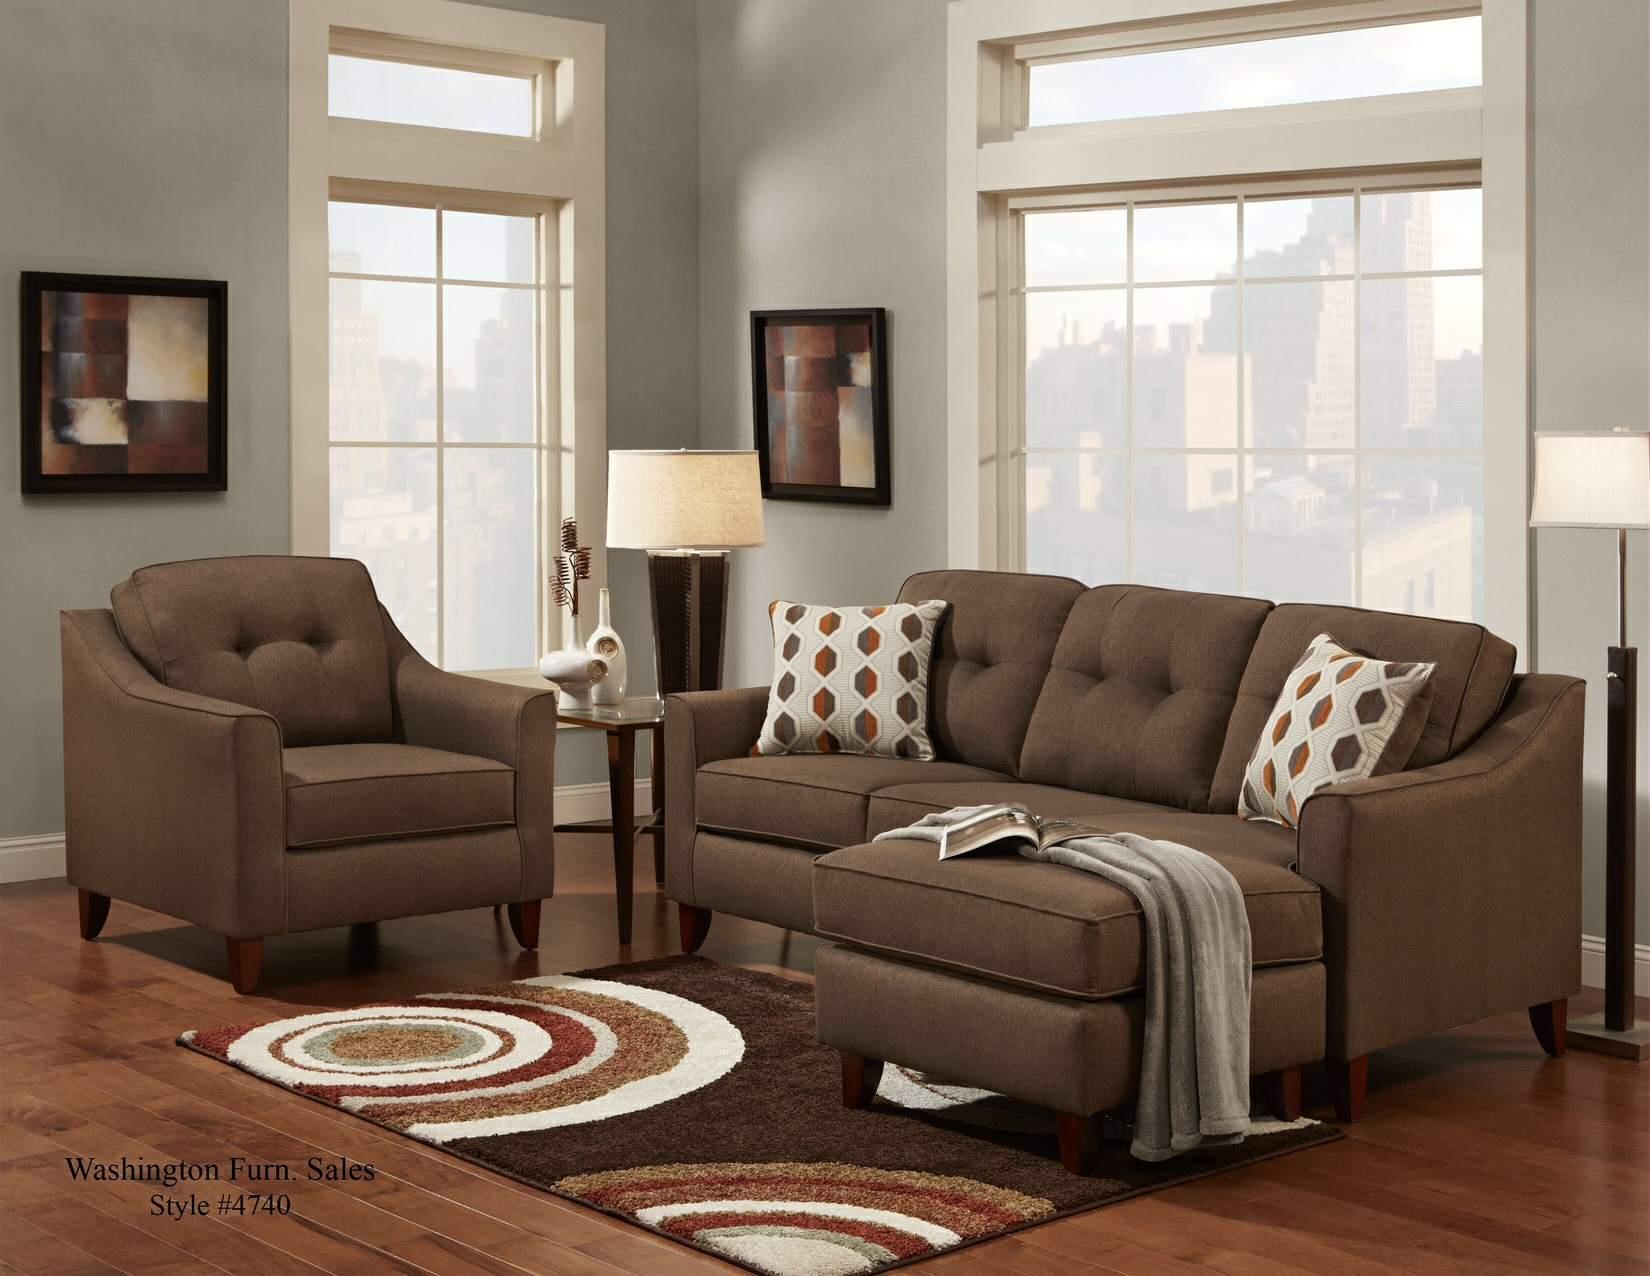 washington furniture stoked wash 4743 586 stoked chocolate. Black Bedroom Furniture Sets. Home Design Ideas